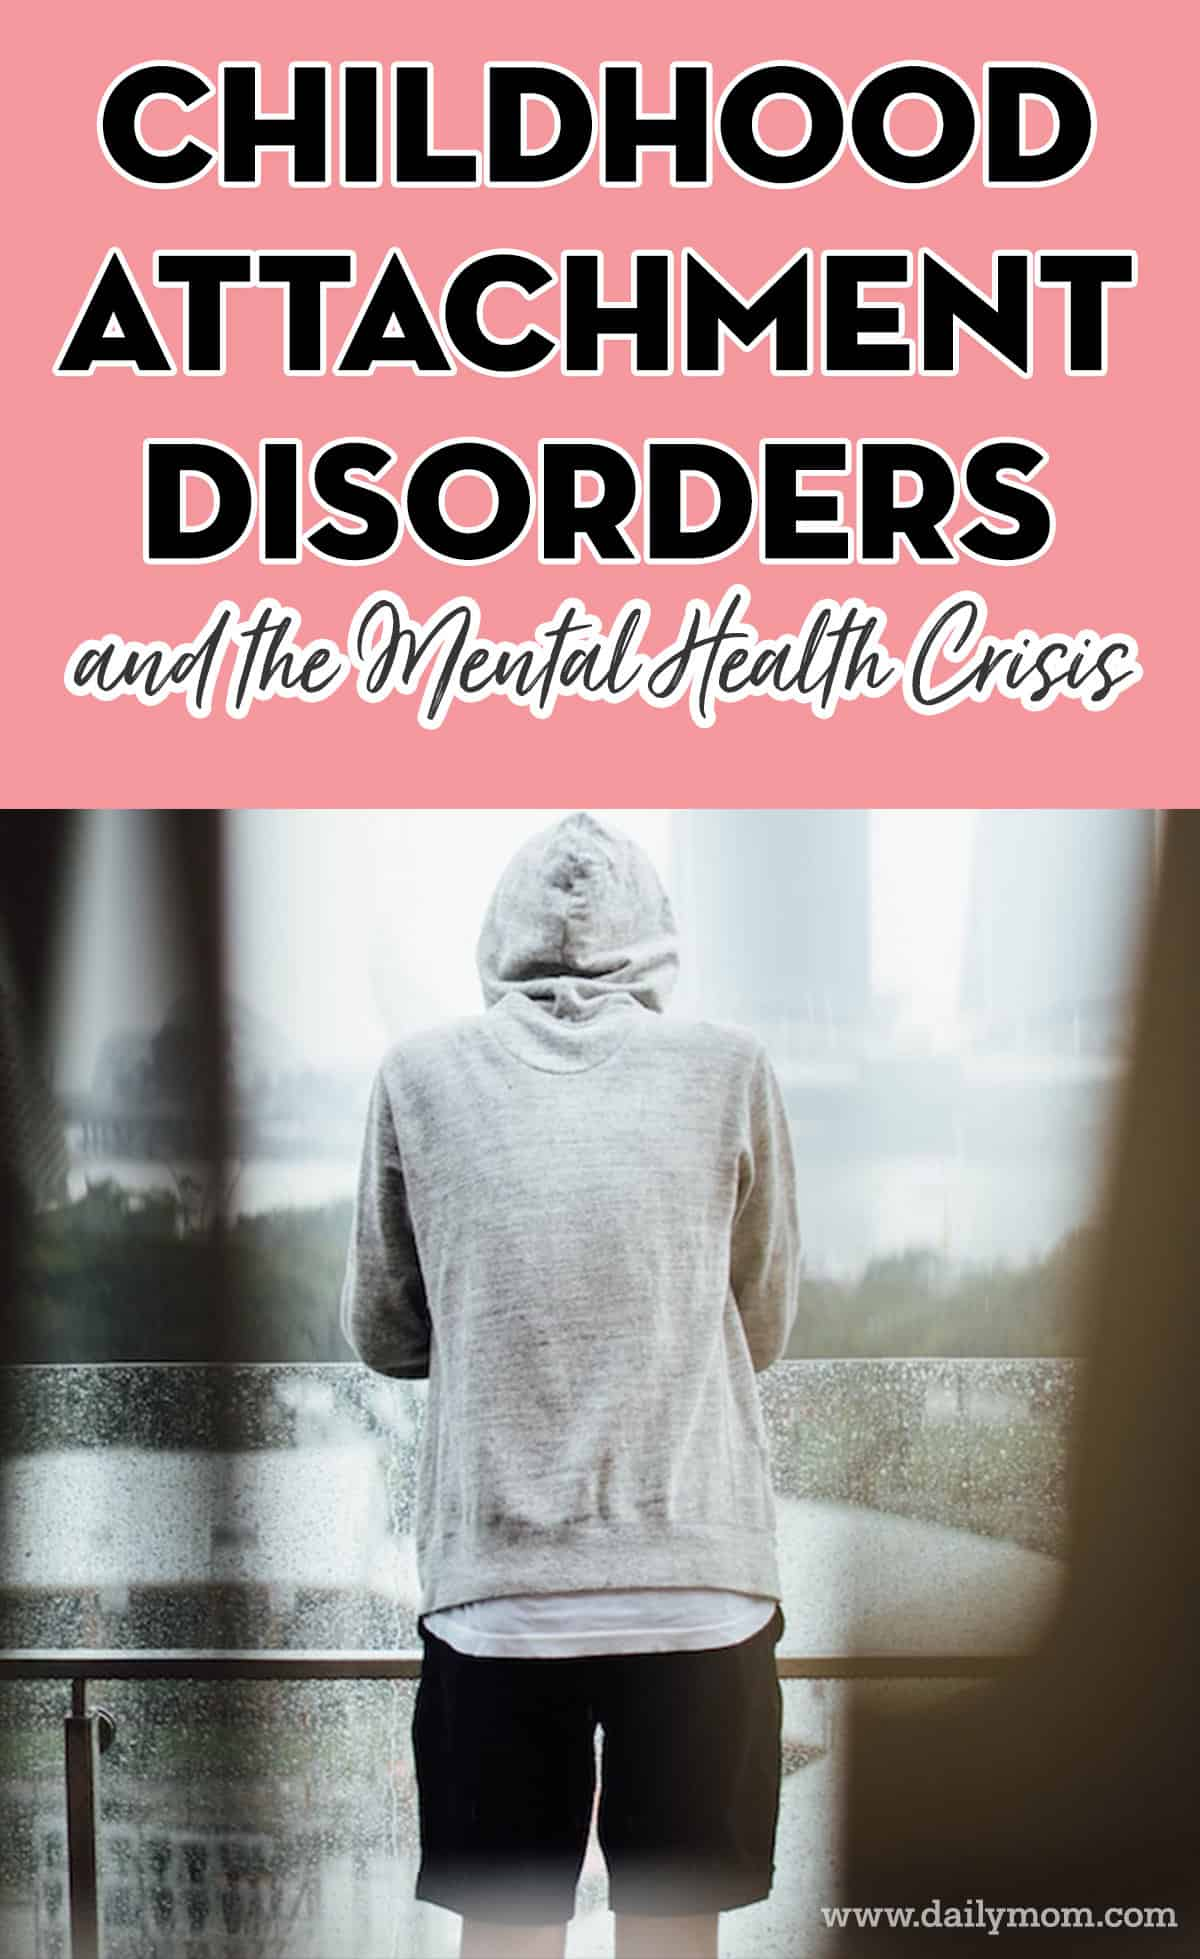 Childhood Attachment Disorders Are Creating A Mental Health Crisis 6 Daily Mom Parents Portal